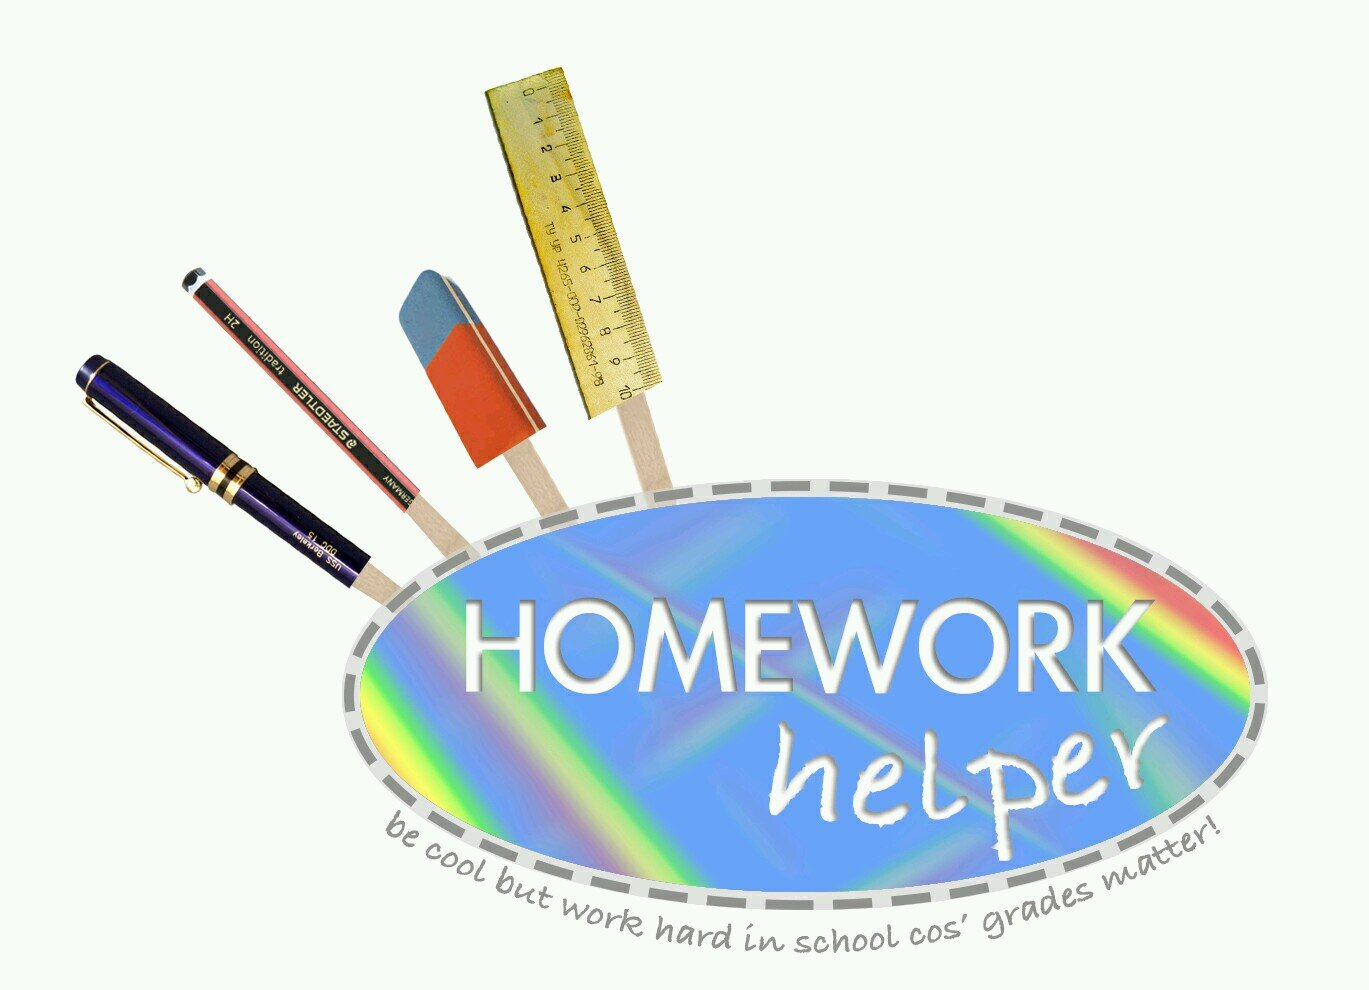 josh alderton homework helper